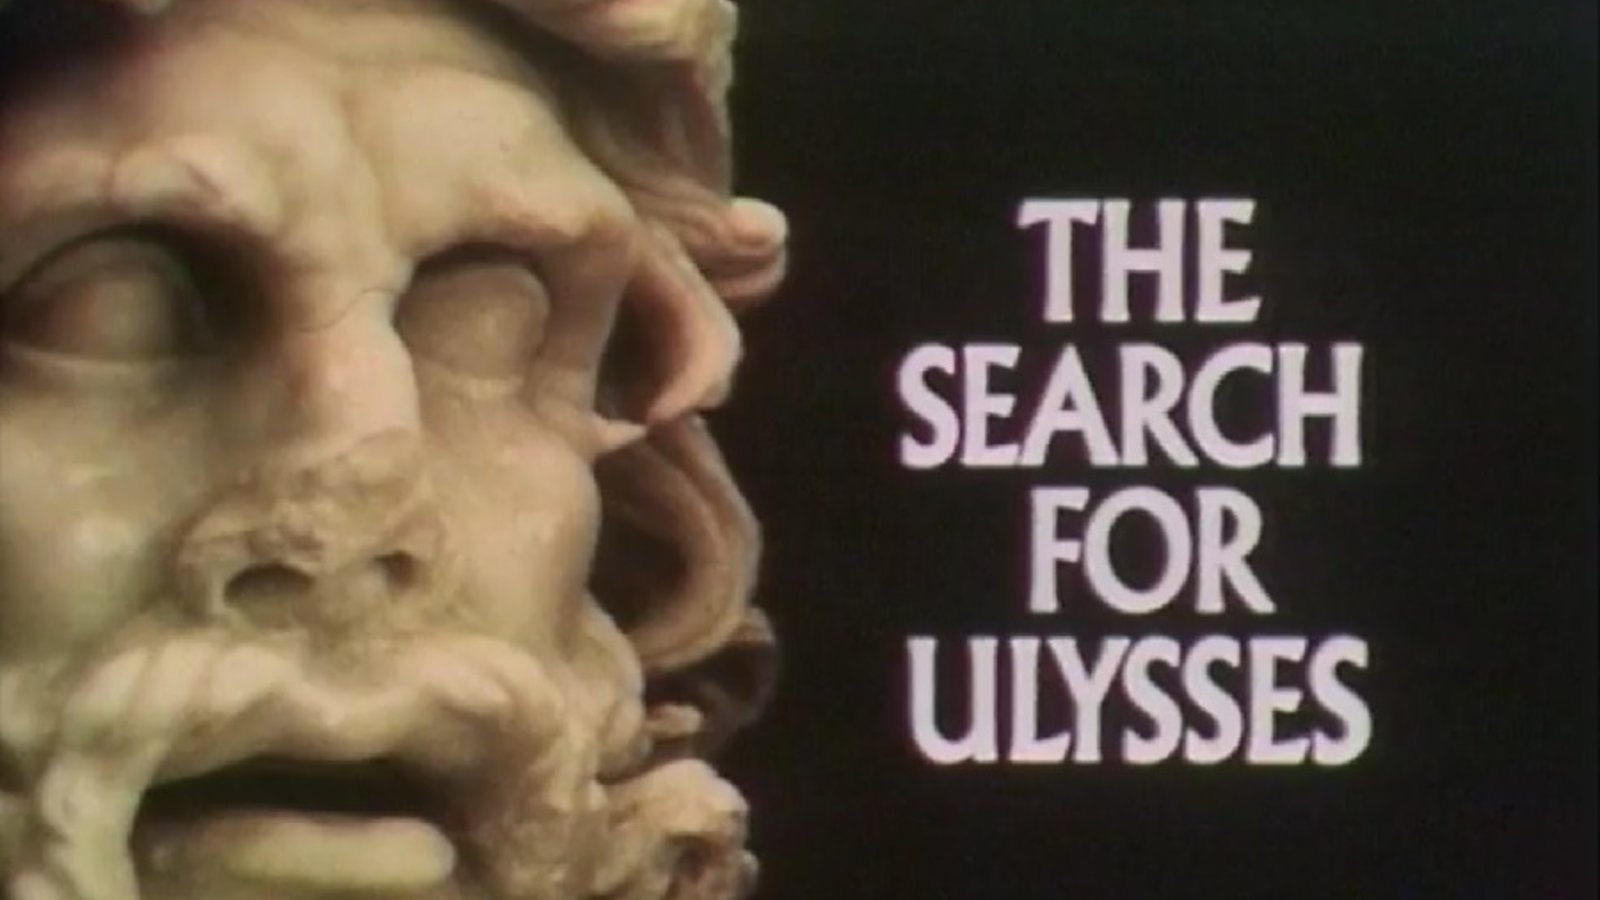 The Search for Ulysses